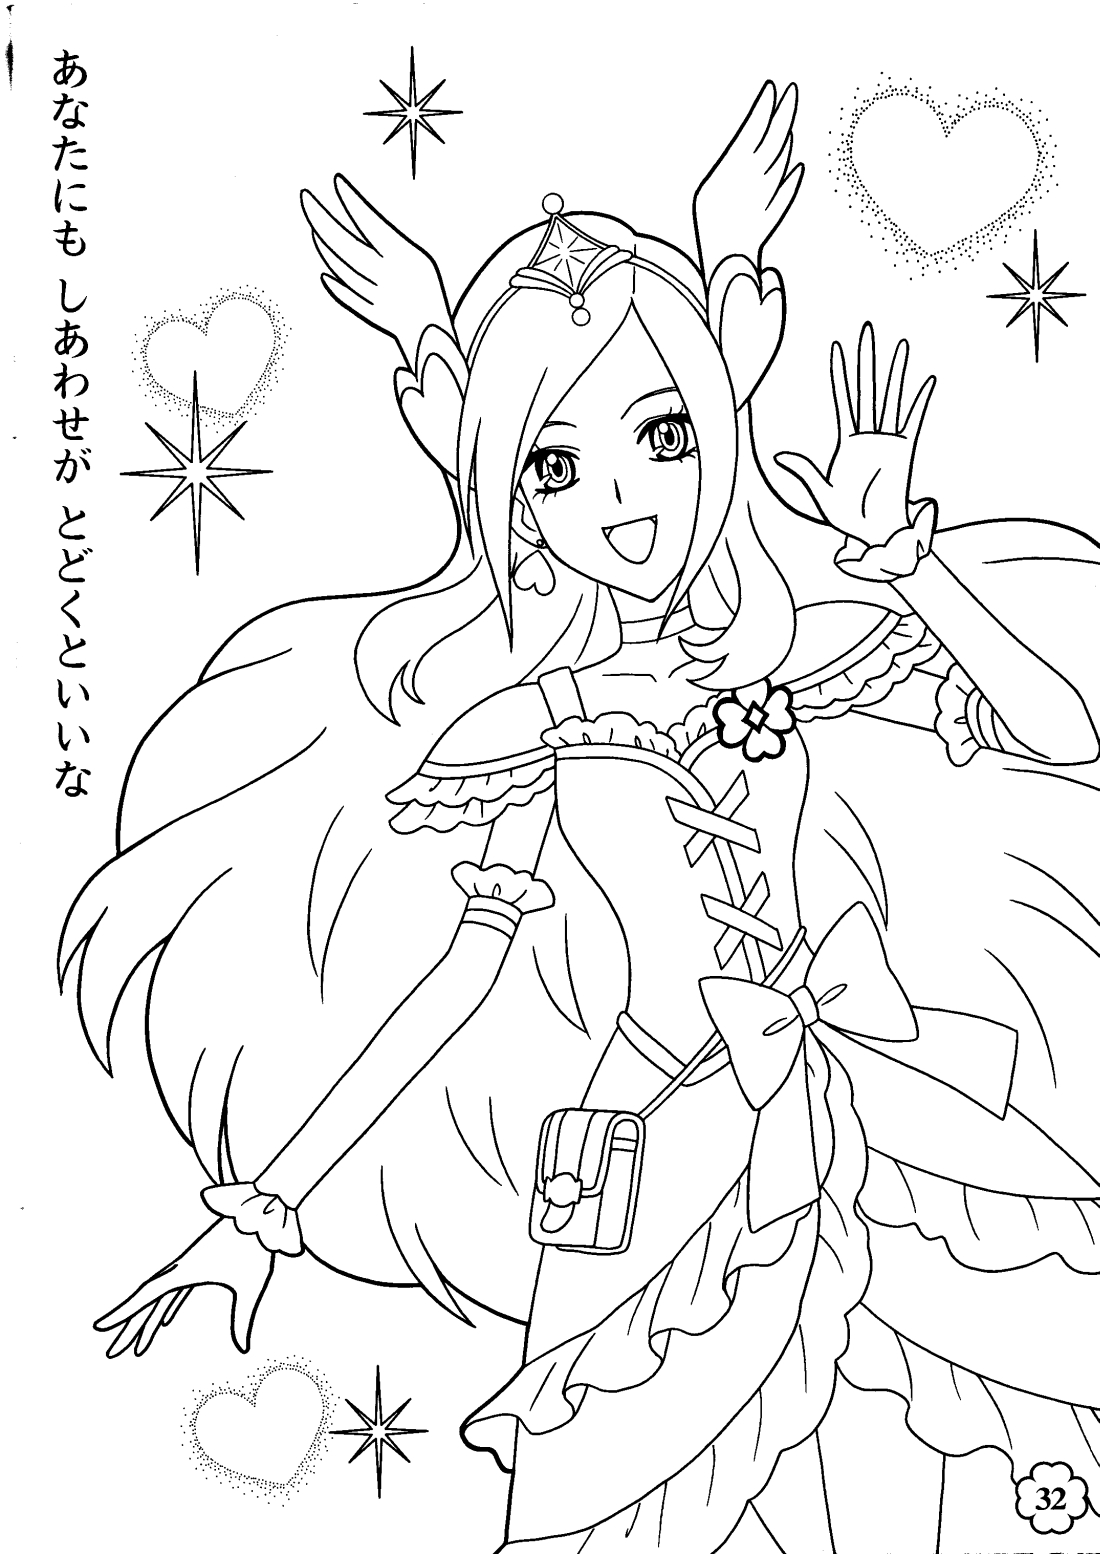 oasidelleanime precure coloring pages - photo #14